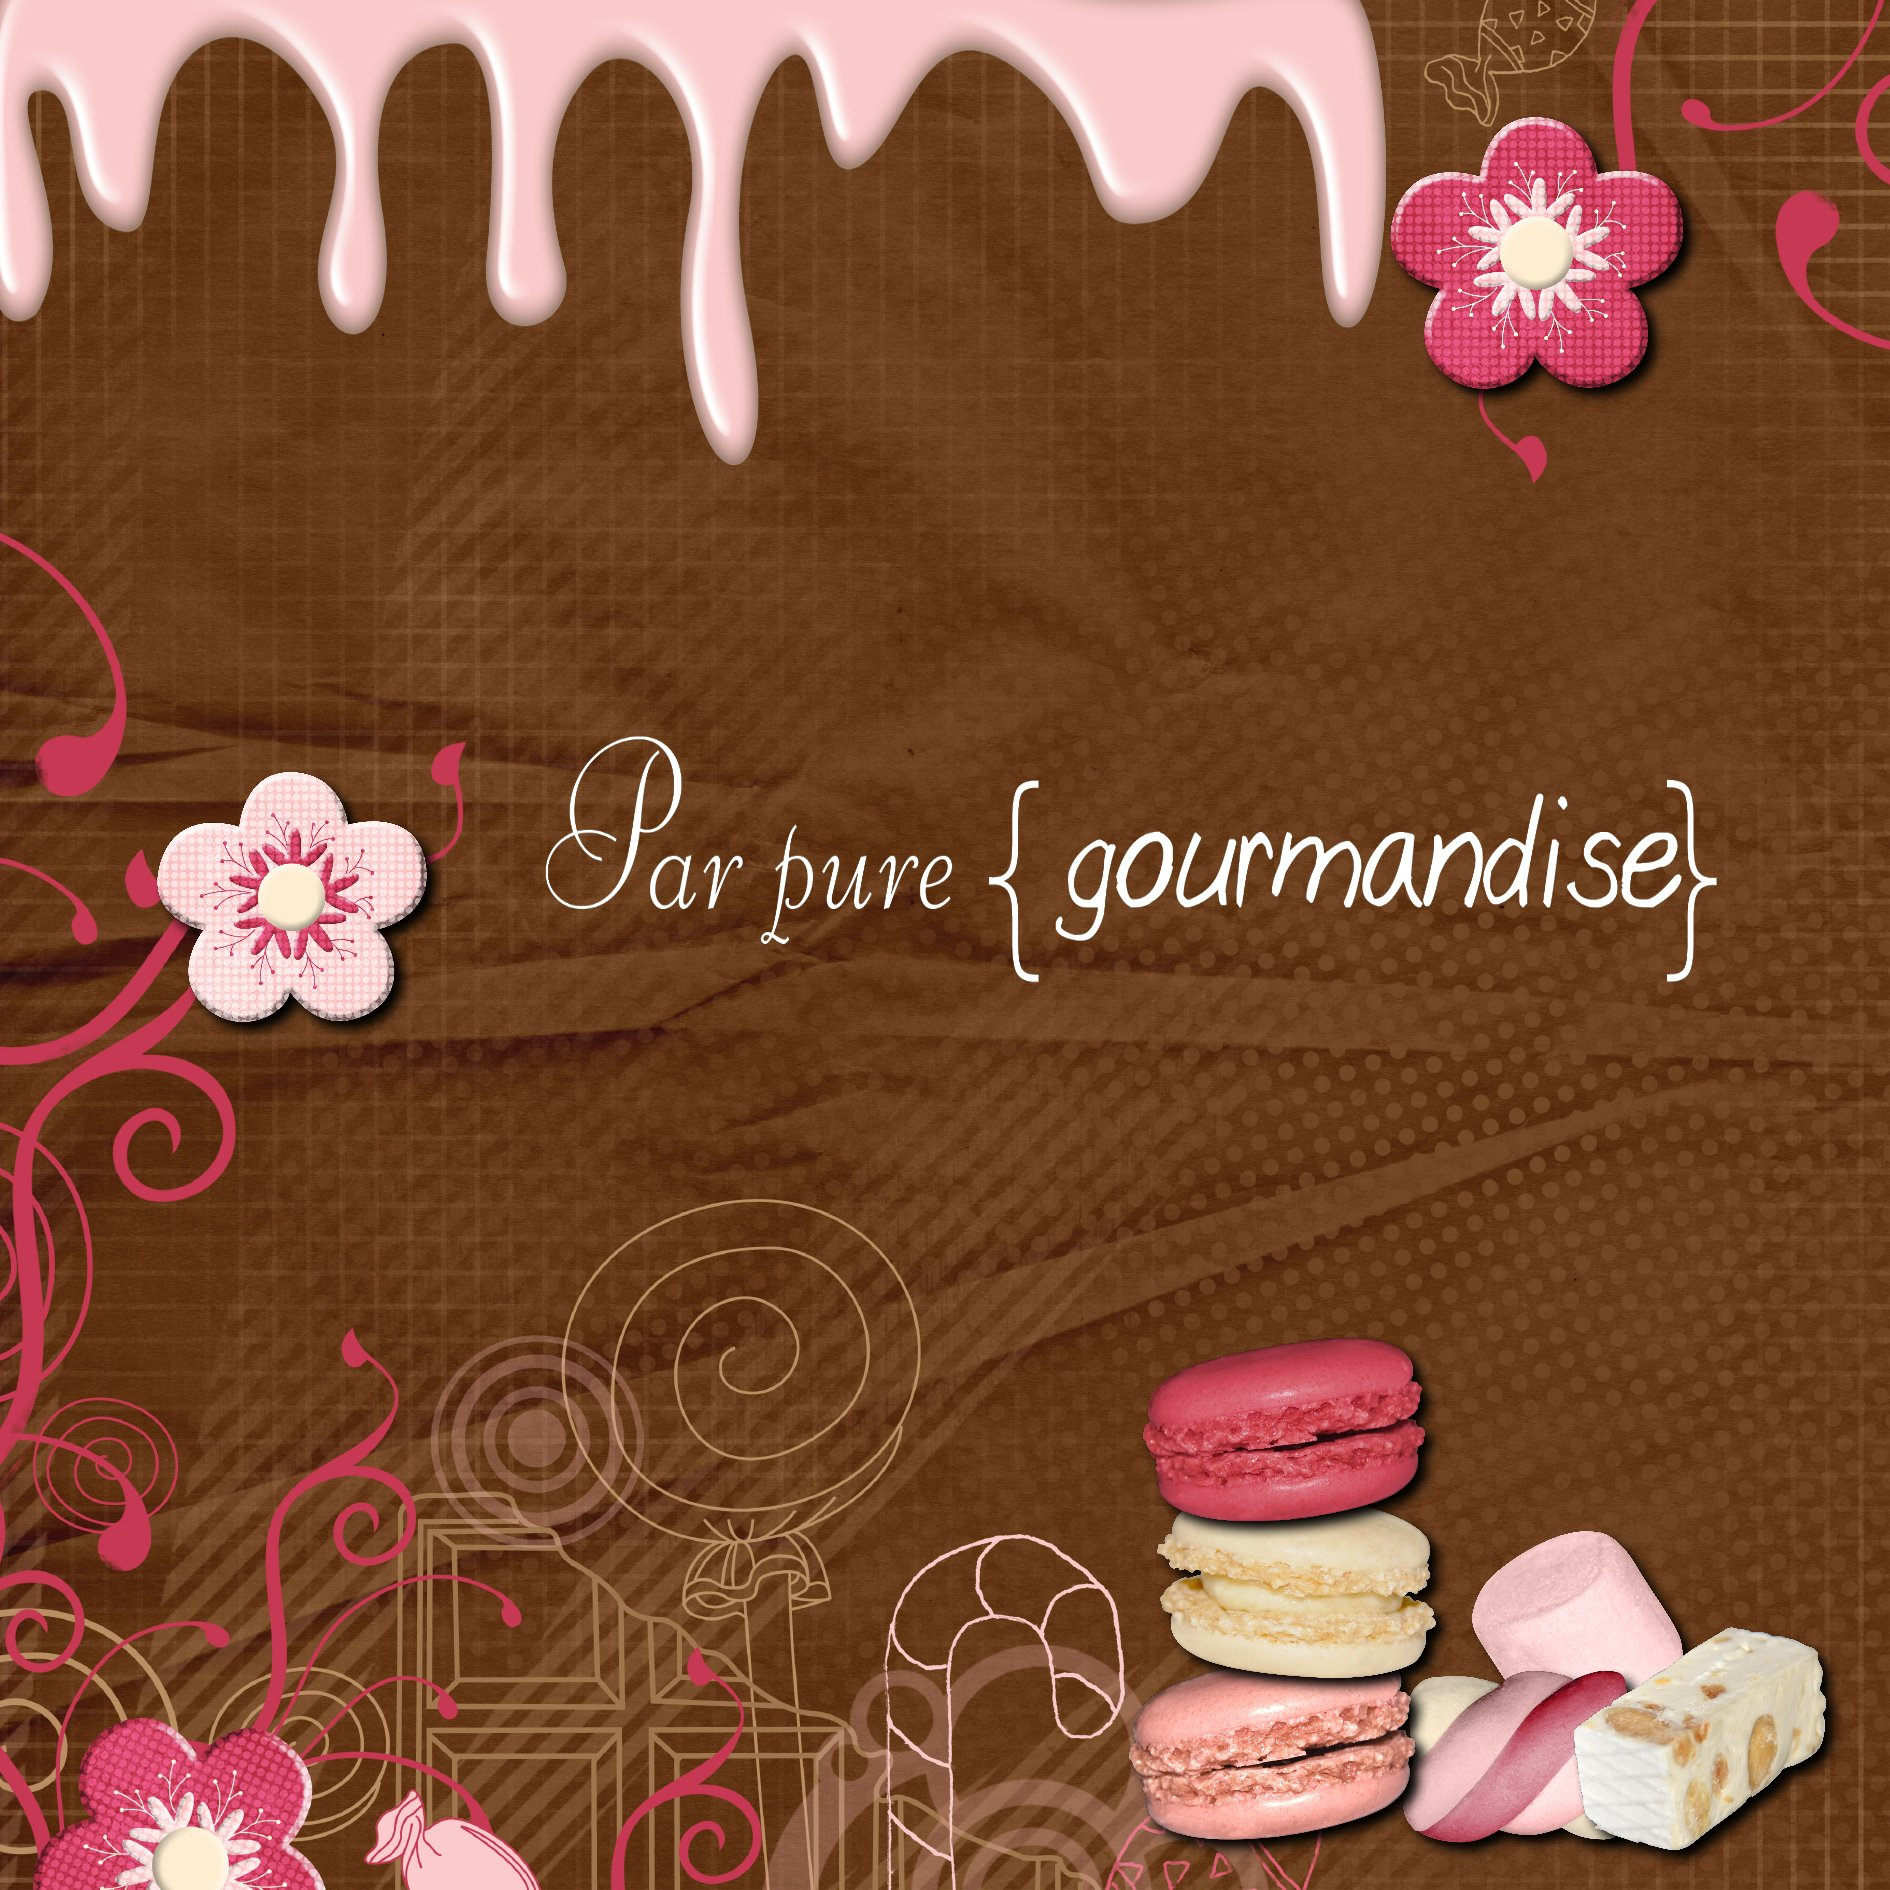 faire part par pure gourmandise collection gourmandise fossealex photos. Black Bedroom Furniture Sets. Home Design Ideas